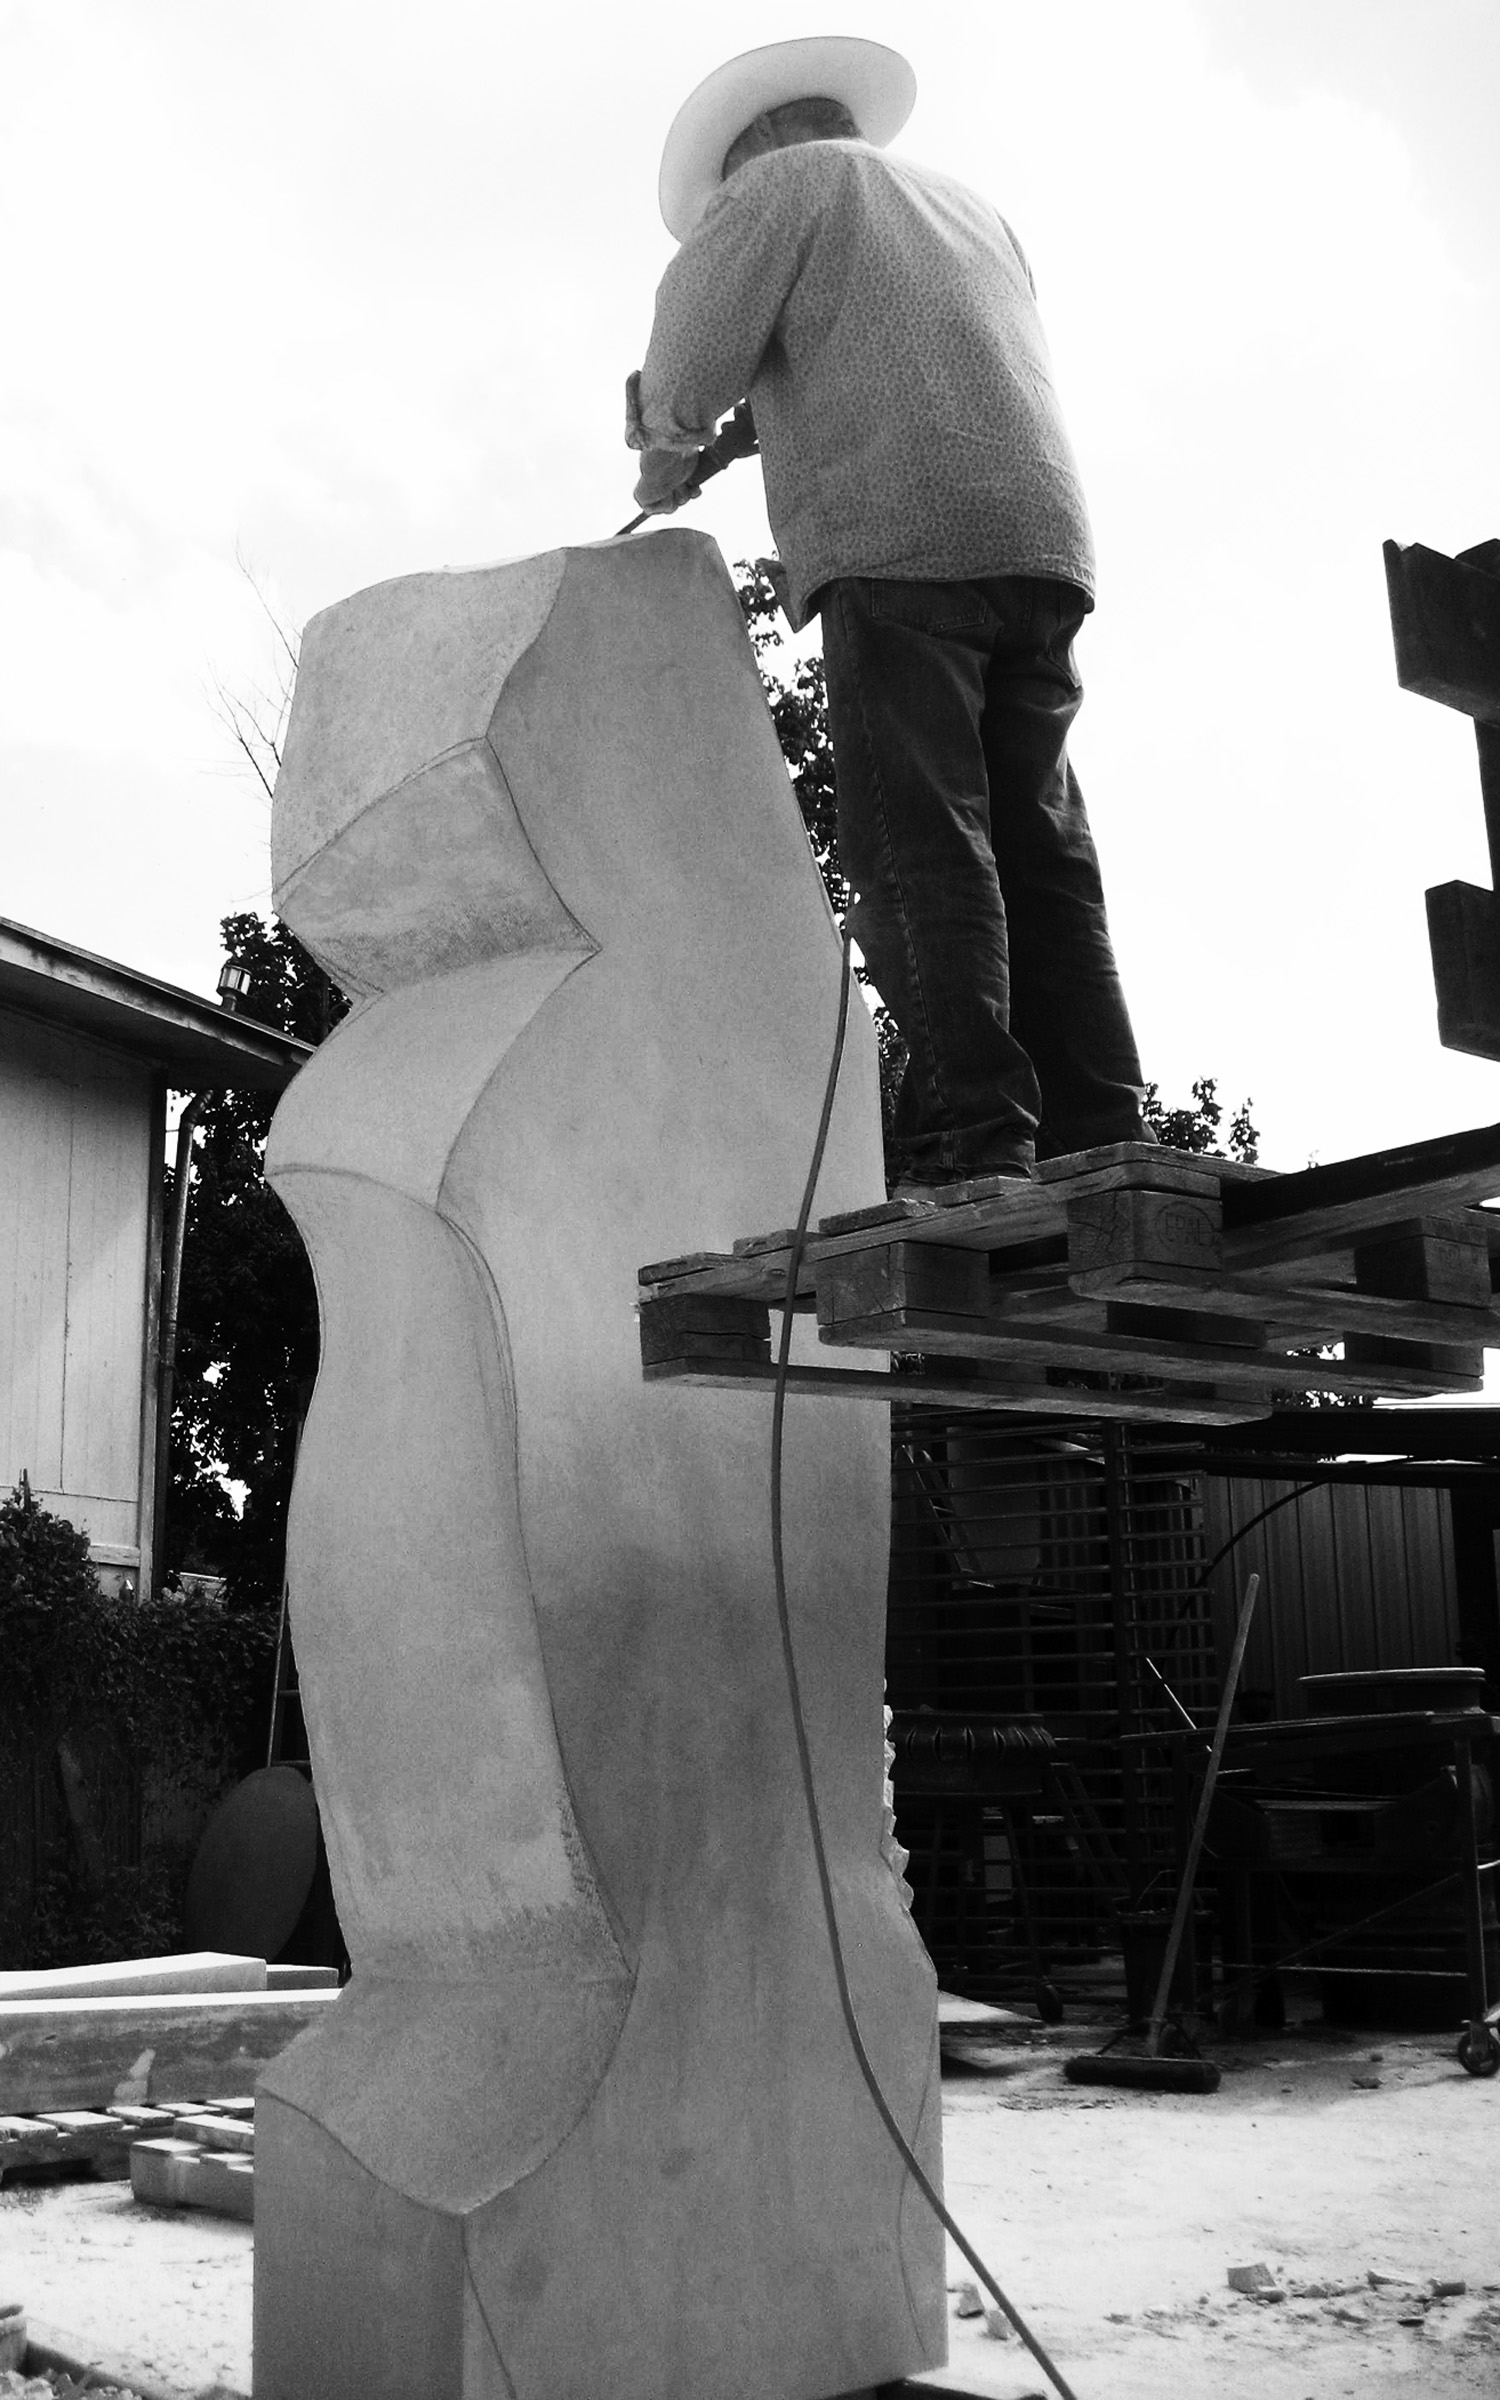 Bill-of-Rights Monument for Arizona Capitol in progress, Amendment #9, 2012 - Photo: Holly Kincannon